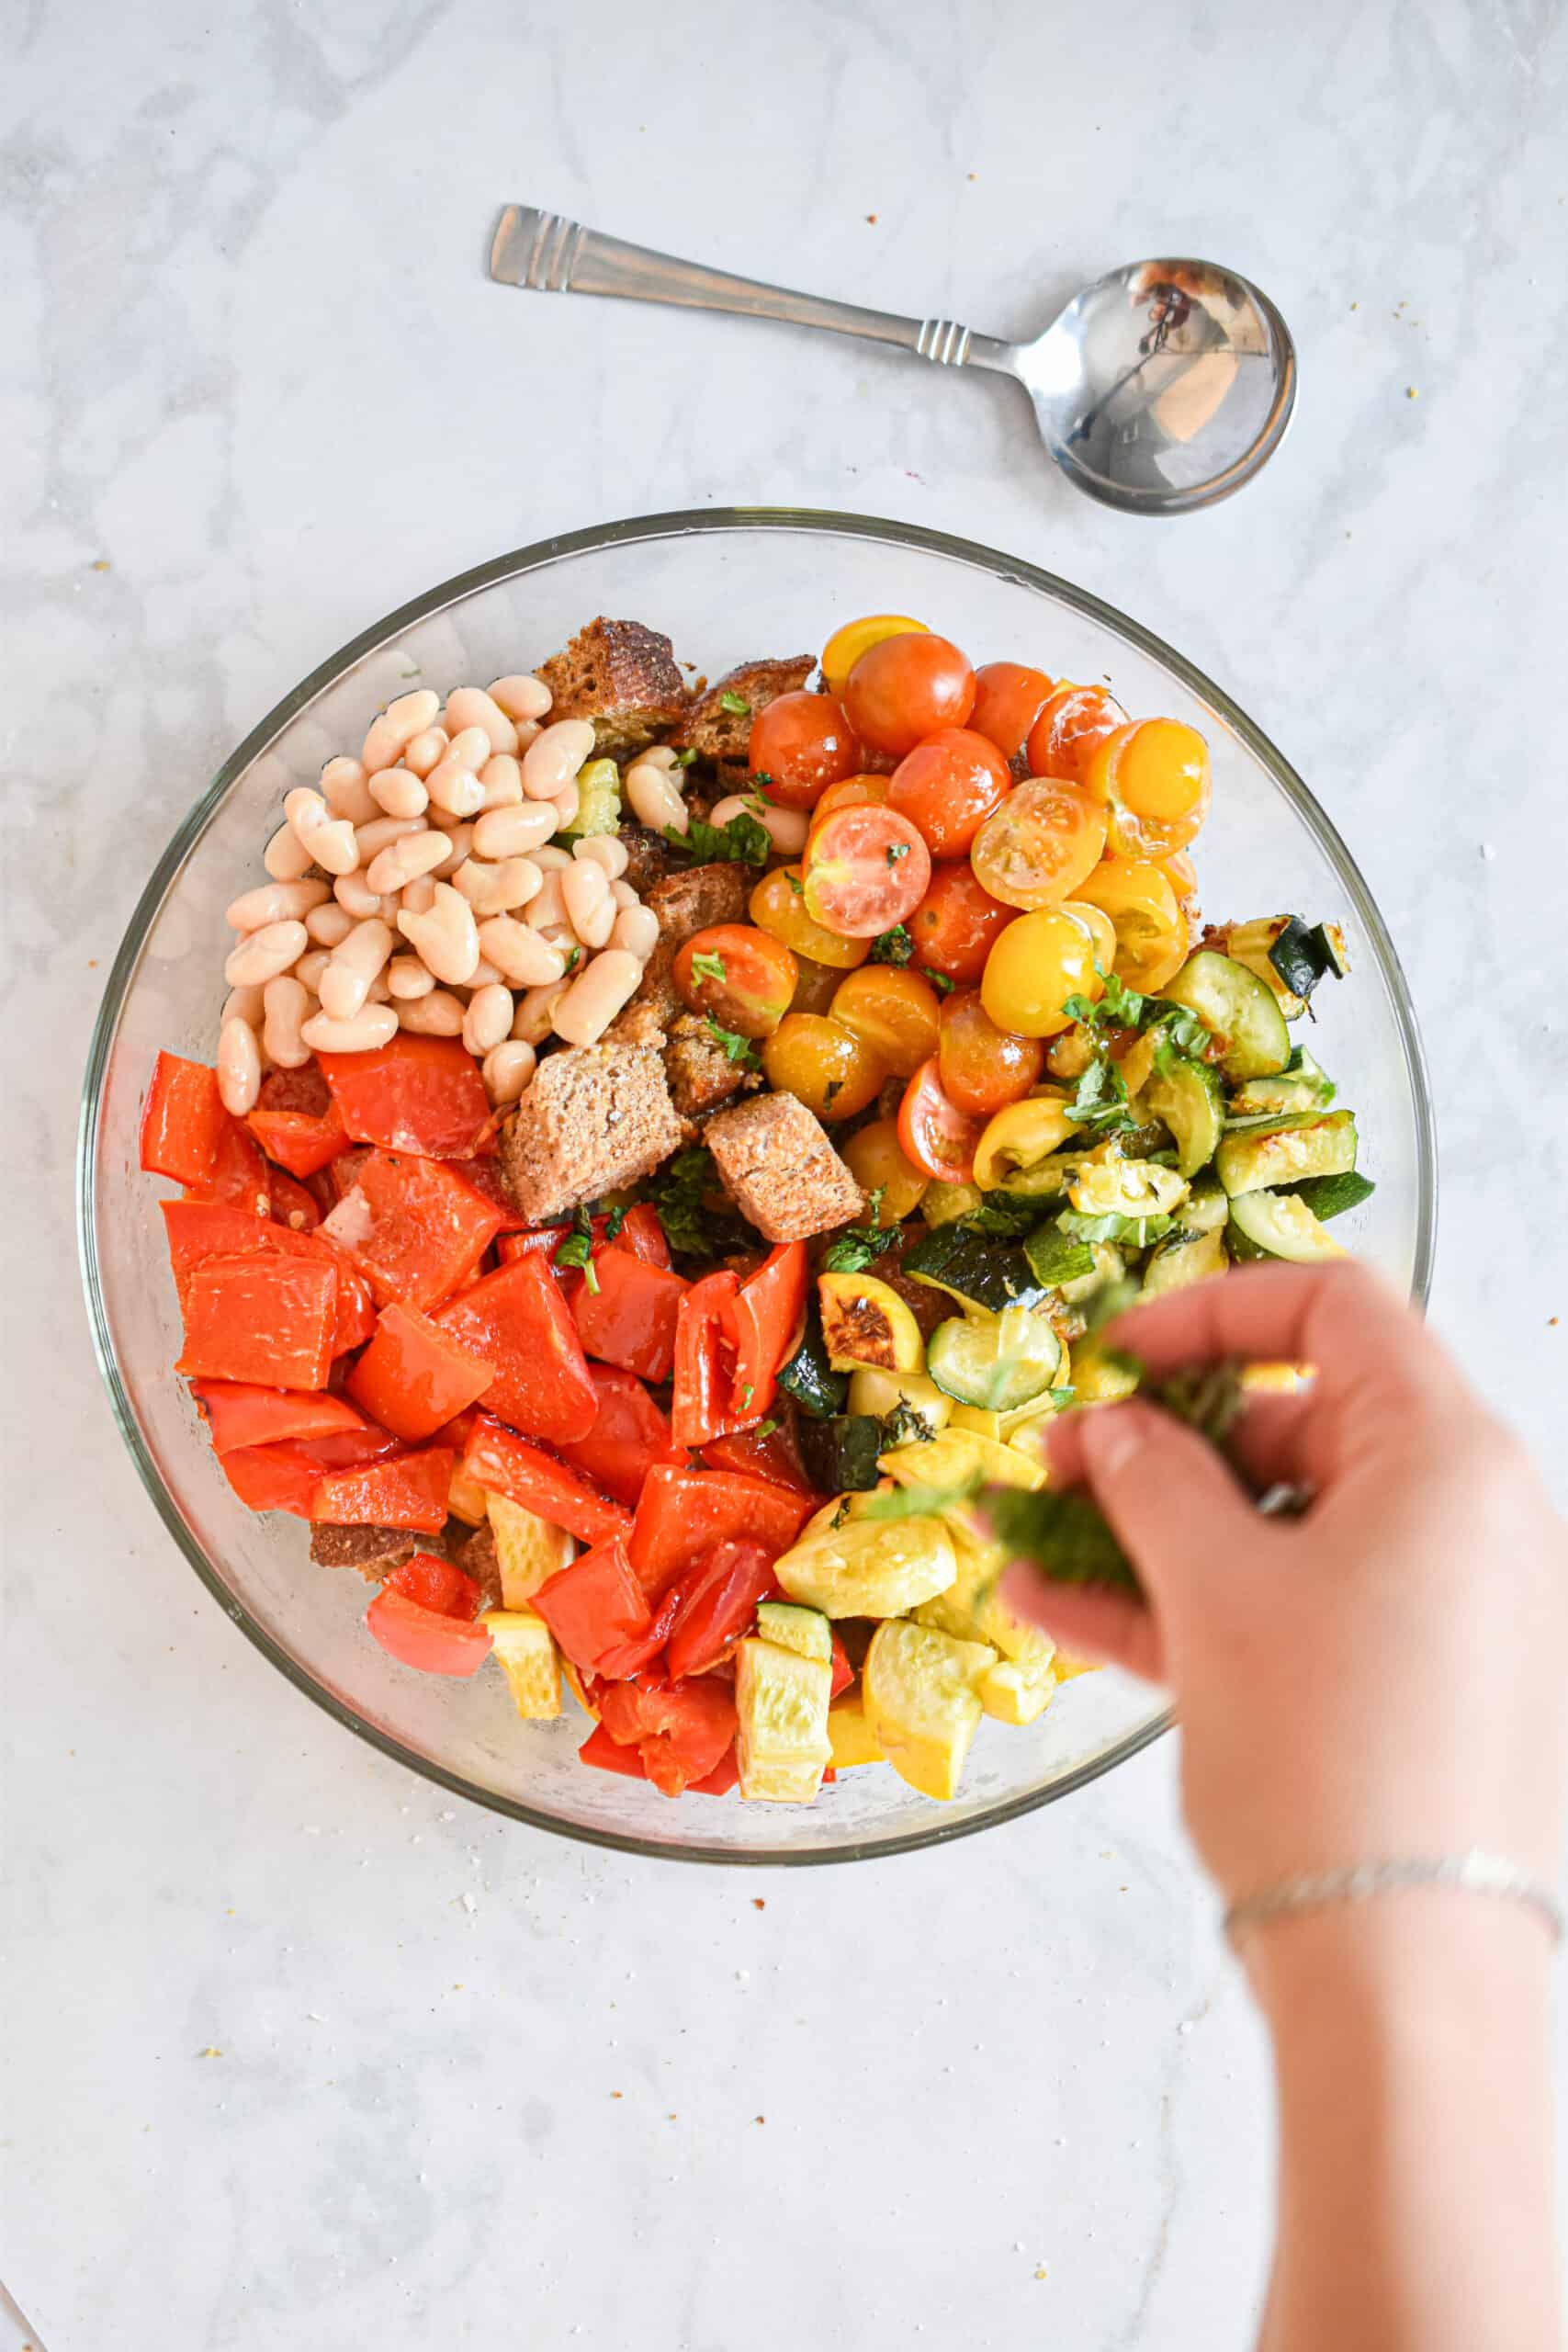 Add basil to the roasted vegetable panzanella